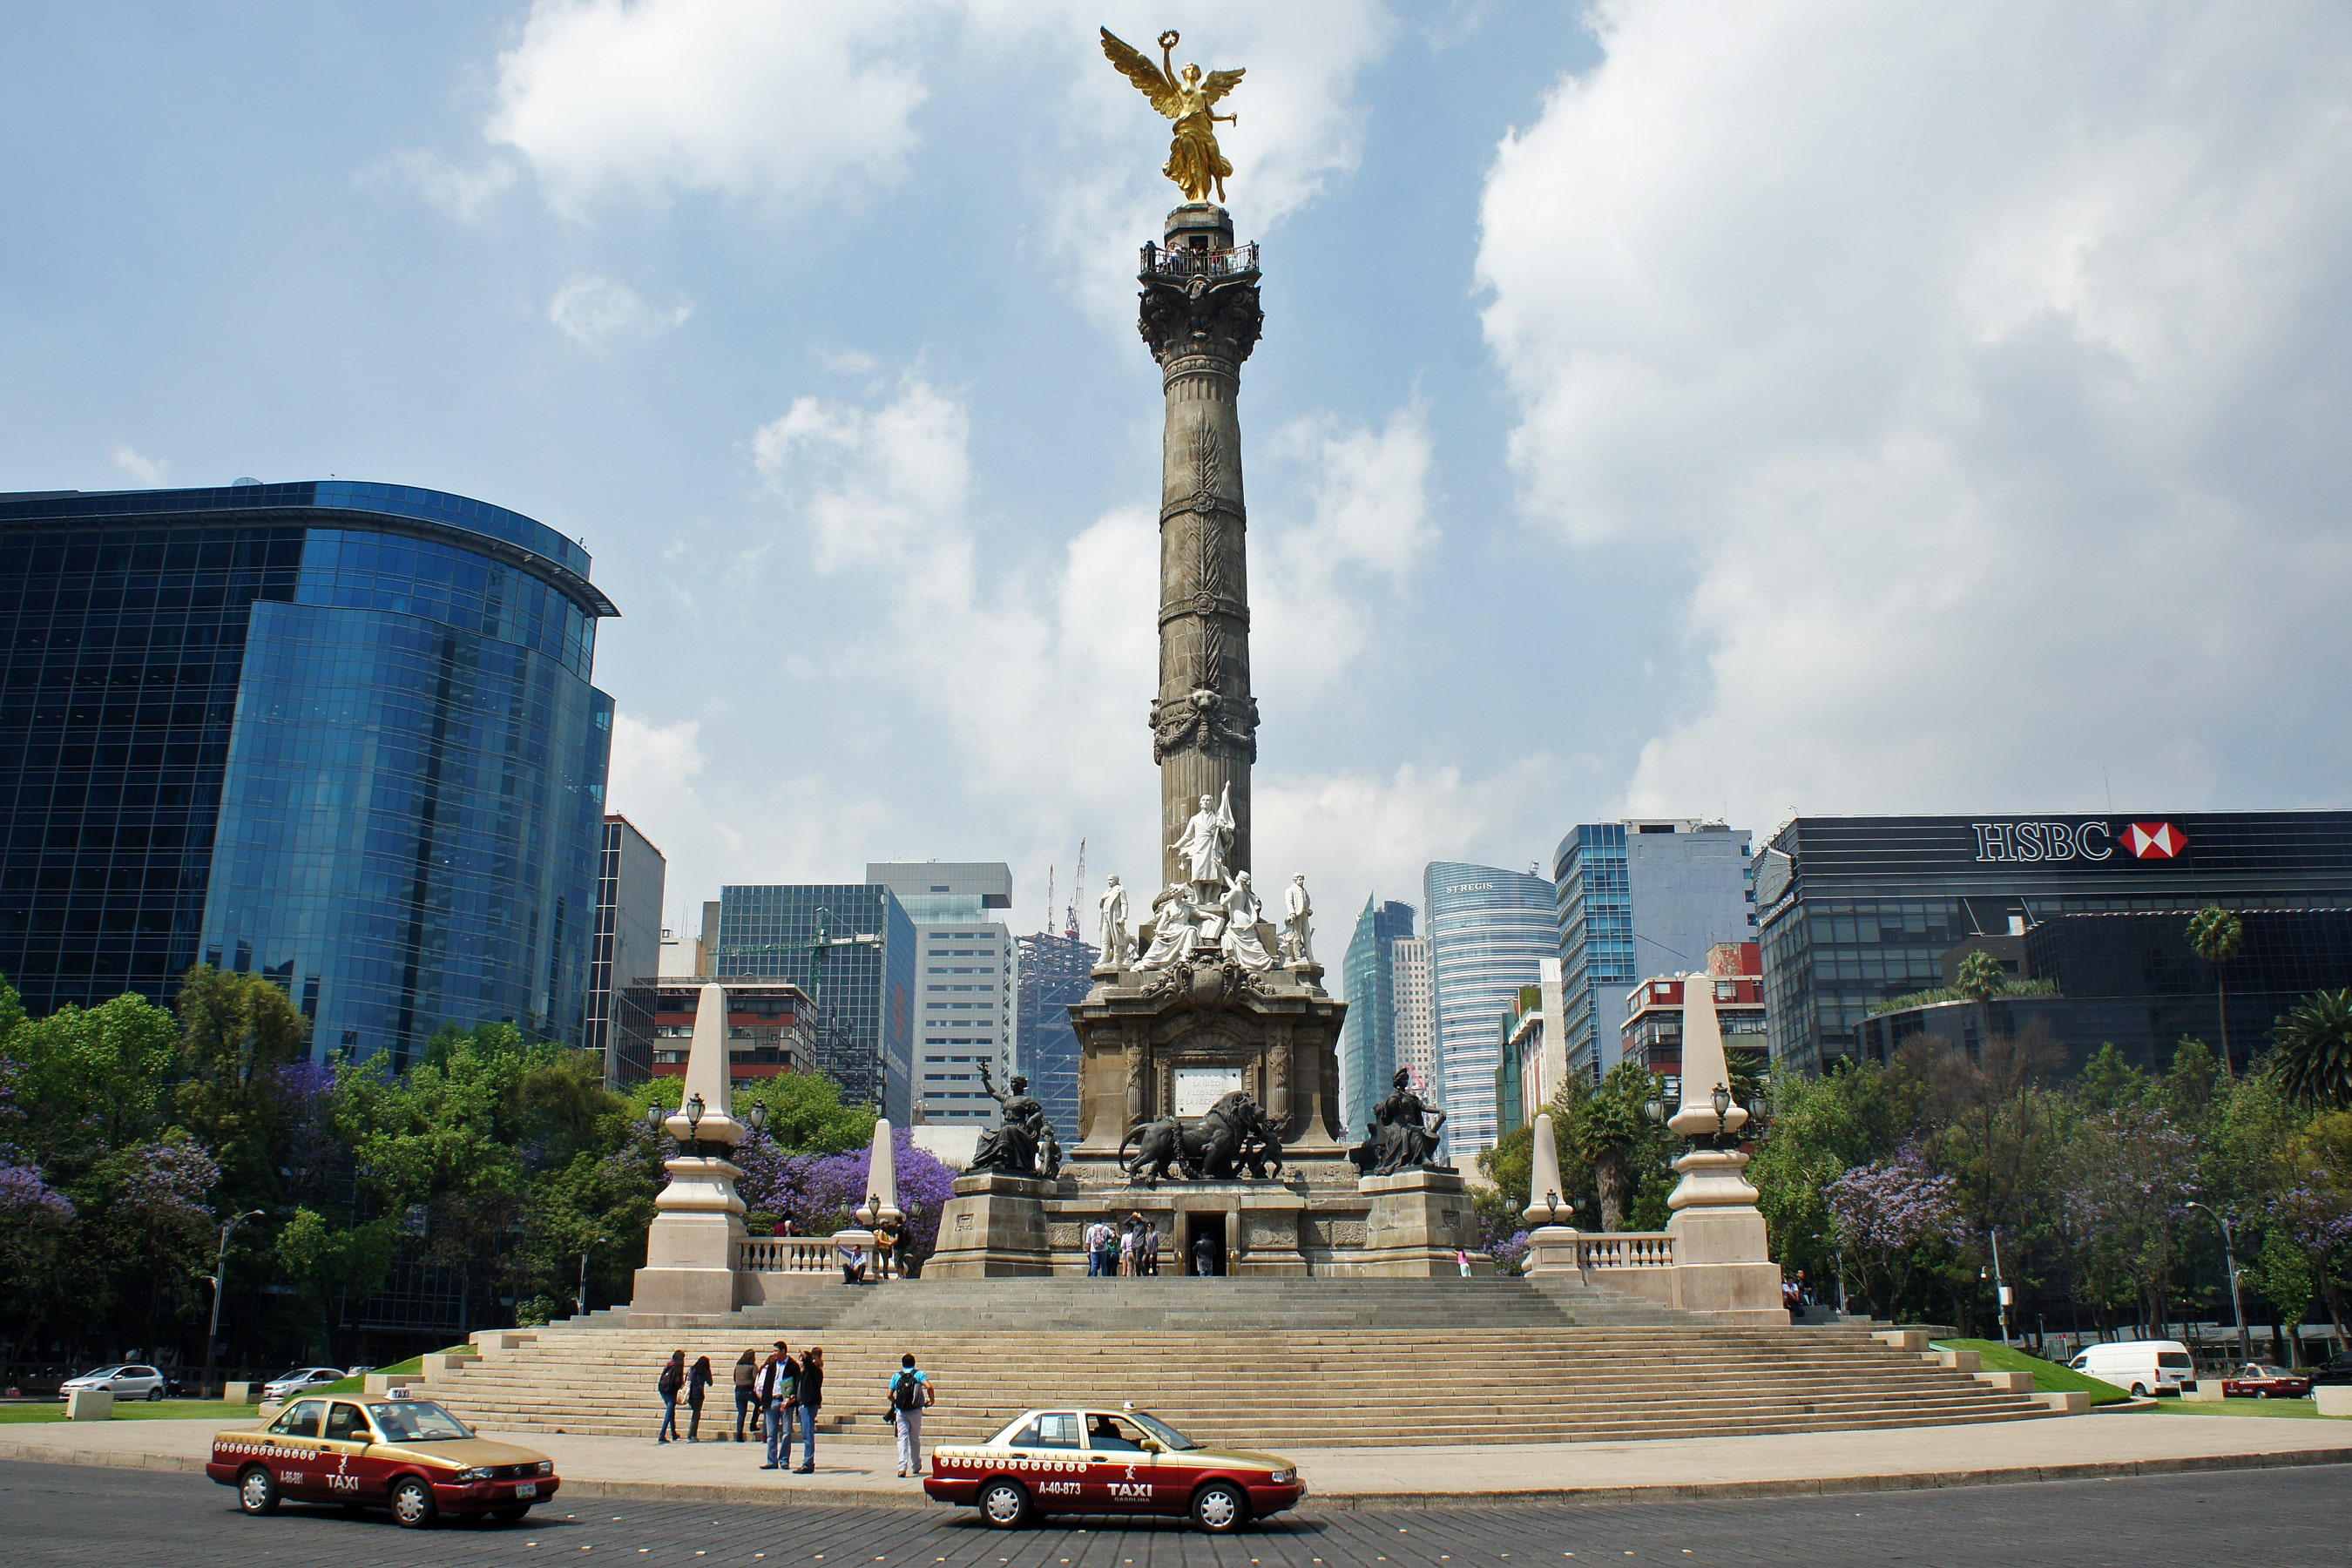 El Angel is one of the best Mexico City landmarks